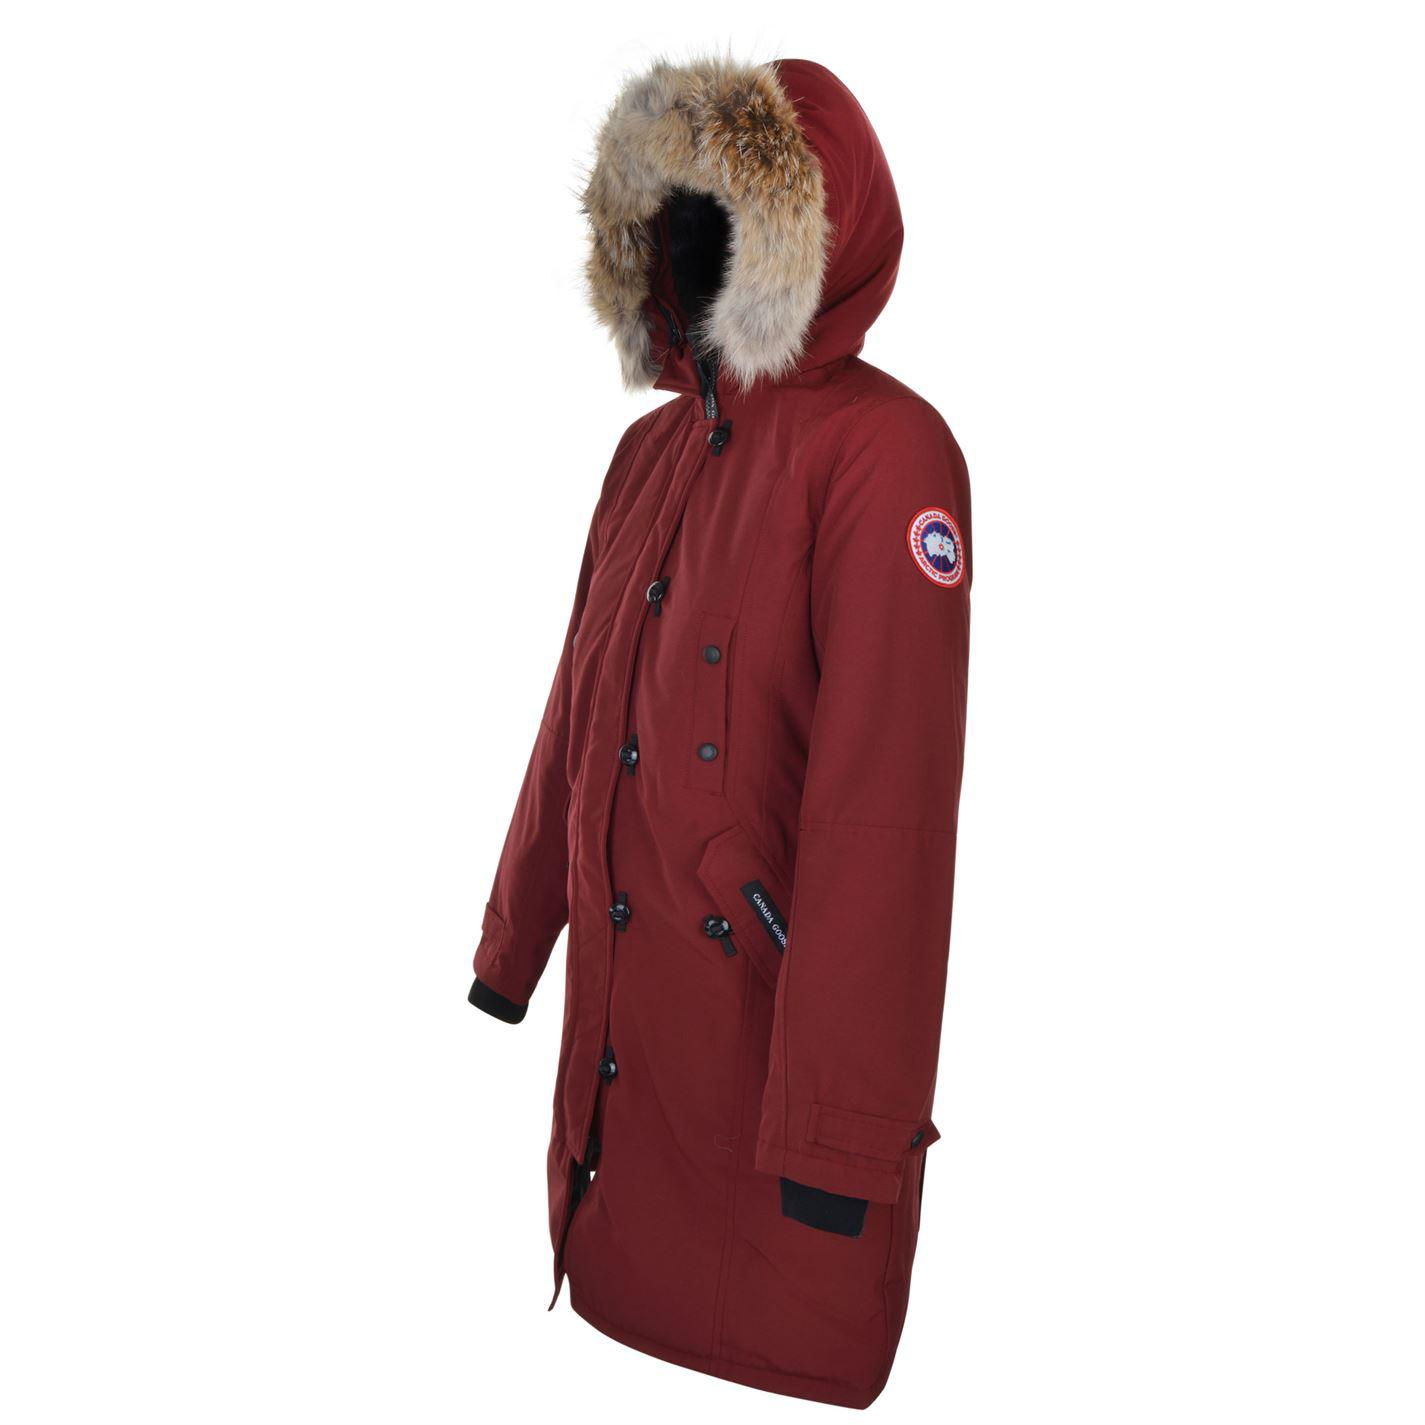 981420df9adf2 ... discount code for canada goose purple kensington parka lyst. view  fullscreen cdbdd ac8fe